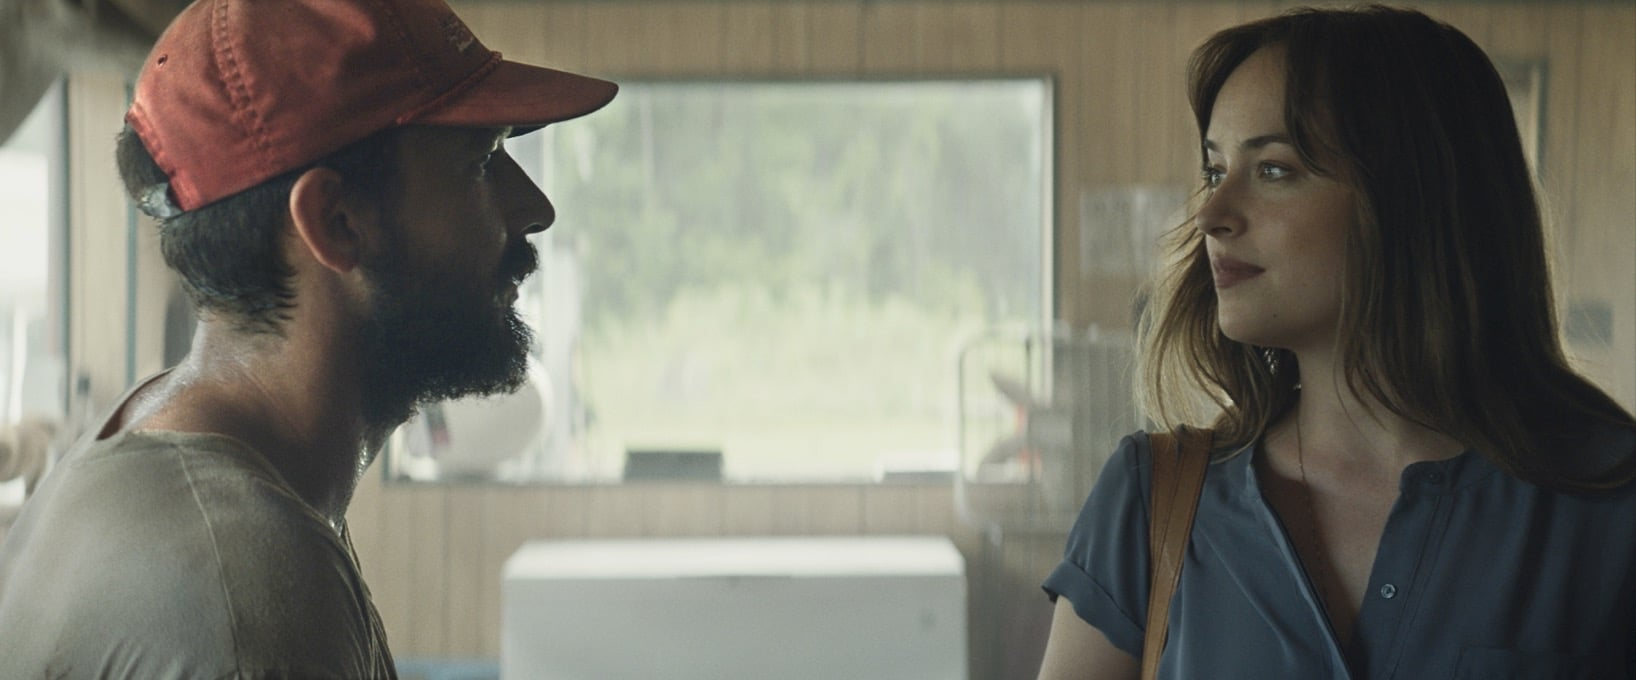 Shia labeouf and dakota johnson in the peanut butter falcon photo credit nigel bluck courtesy of roadside attractions and armory films